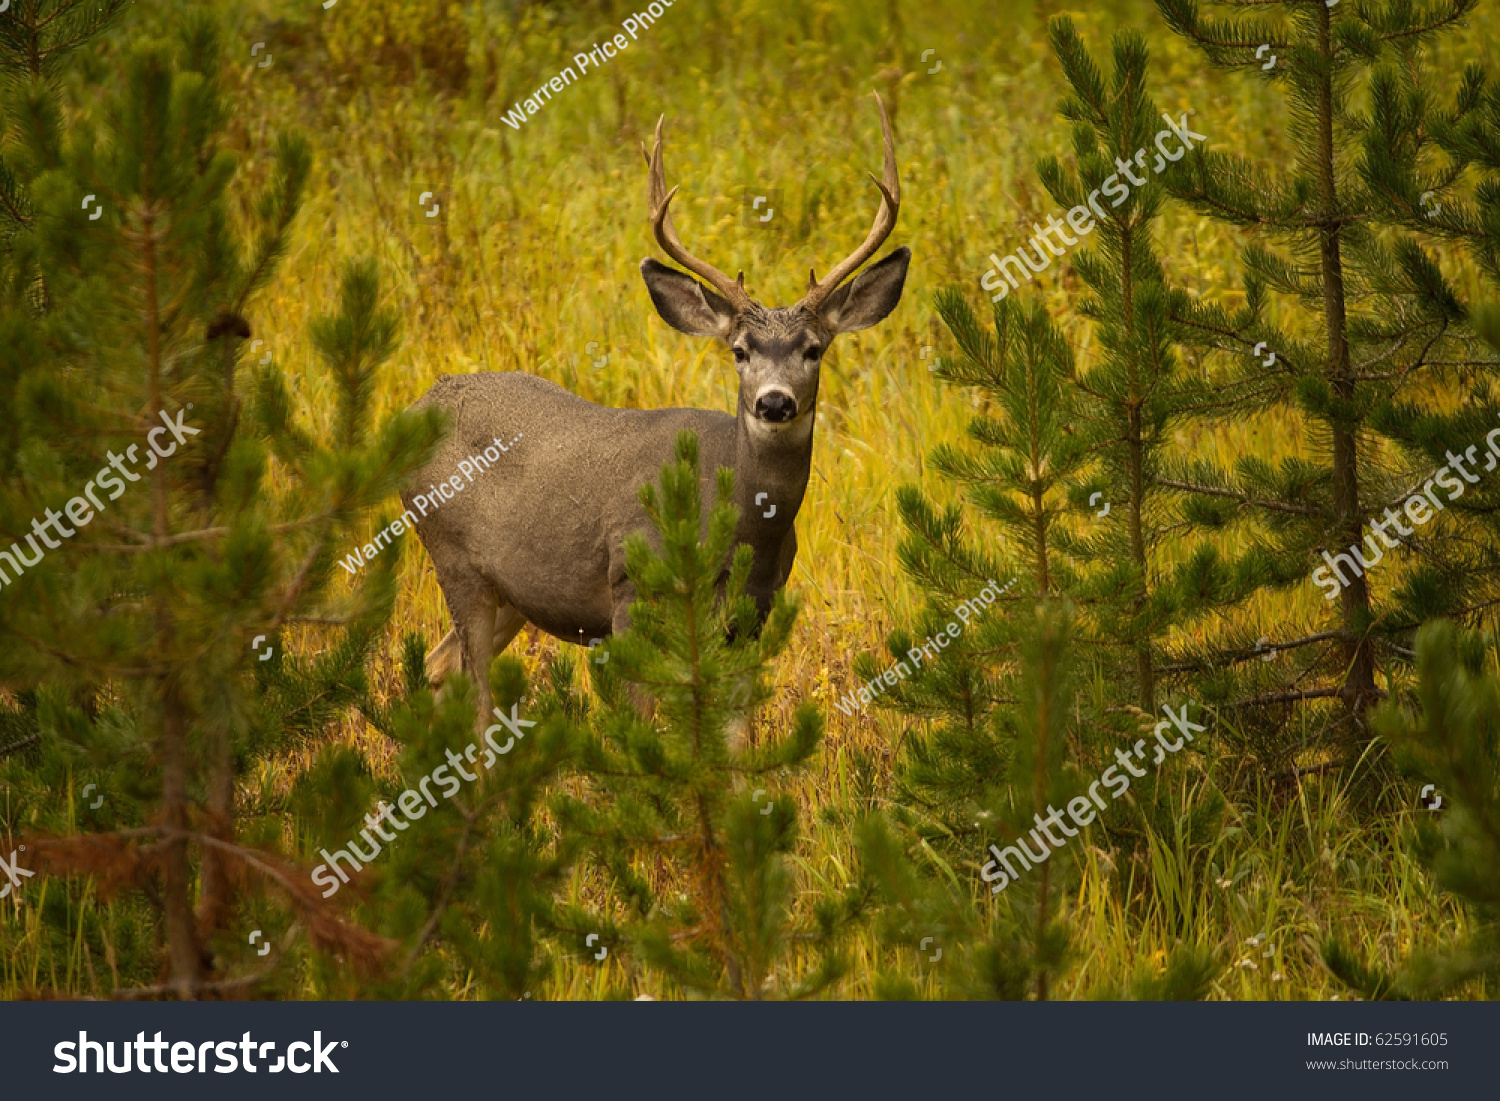 Mule Deer Buck Staring Into Camera With Pine Bushes In Foreground And Lush Grasses In Back. Taken In Yellowstone National Park. Stock Photo ...